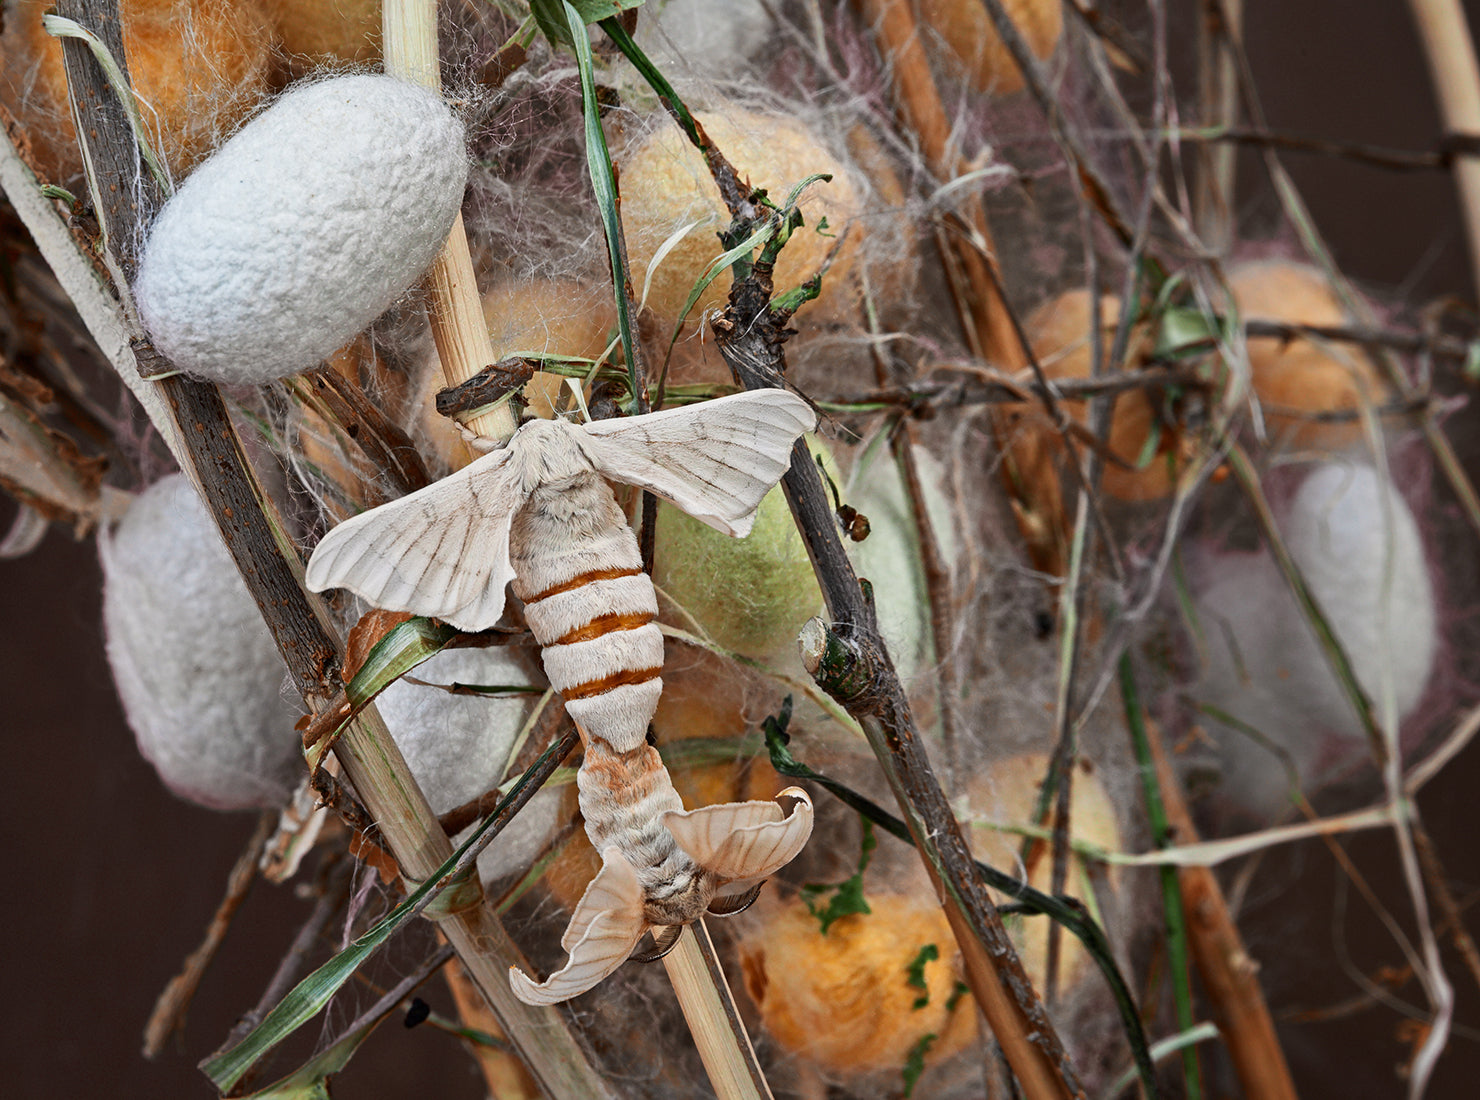 Silkworm moth and the cocoons